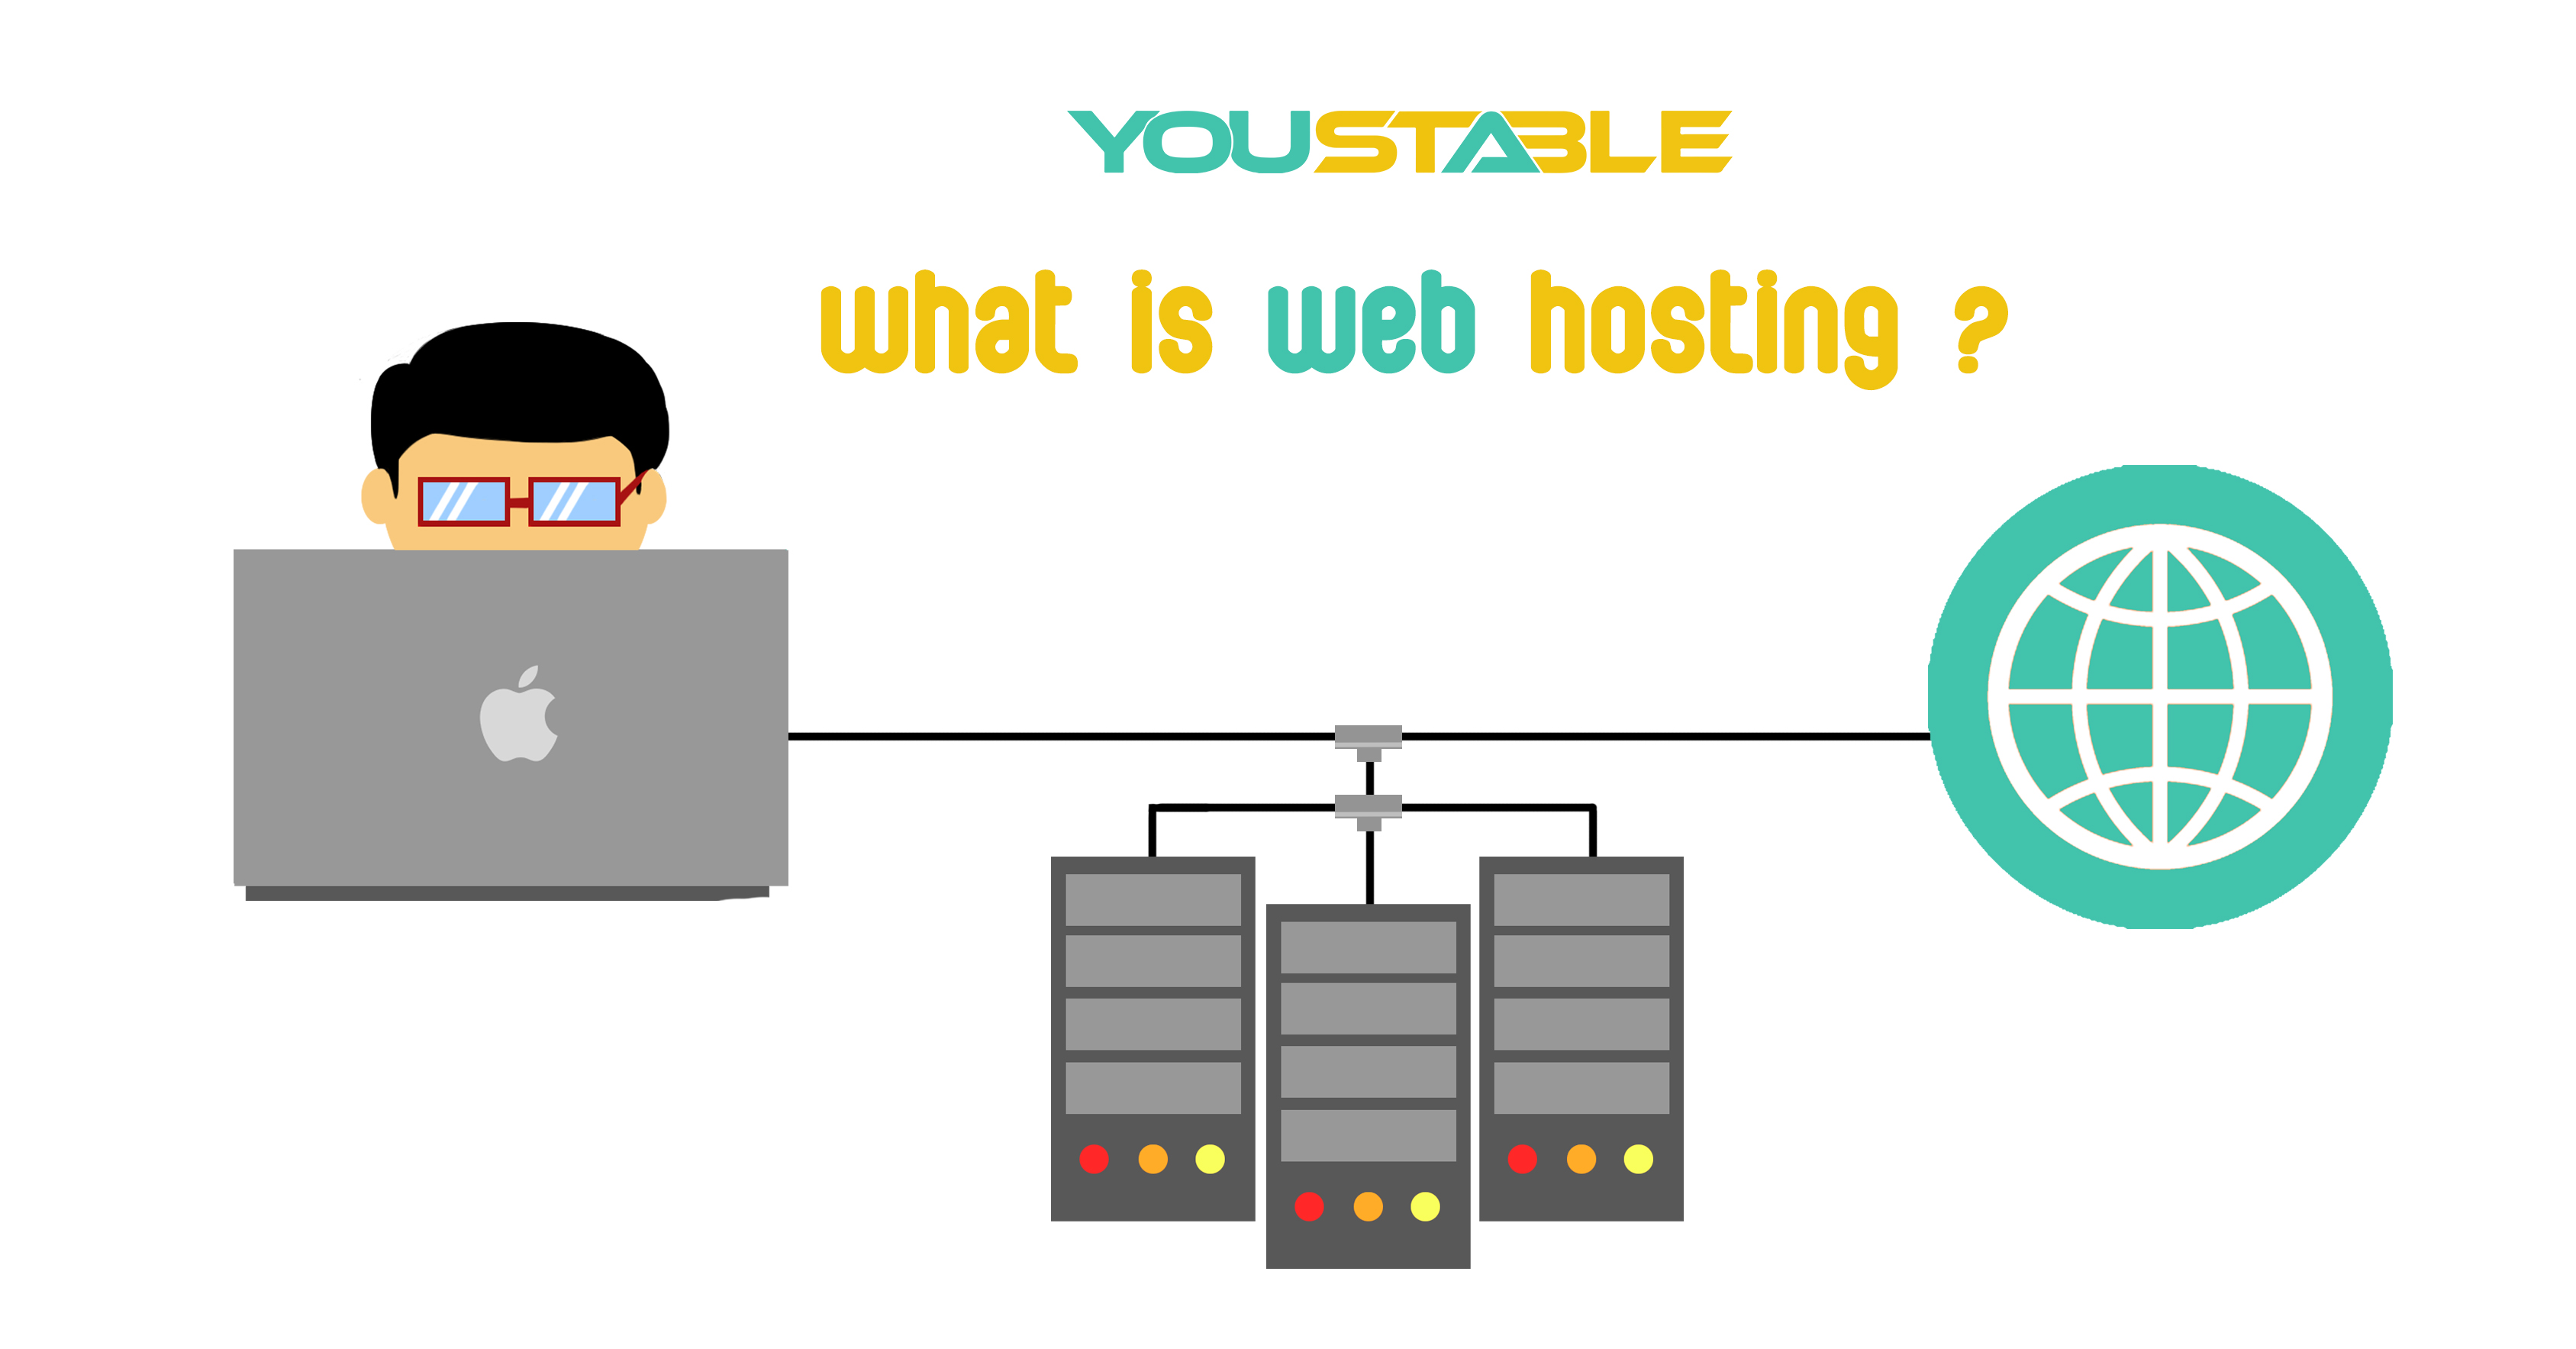 Cloud hosting vs VPS hosting